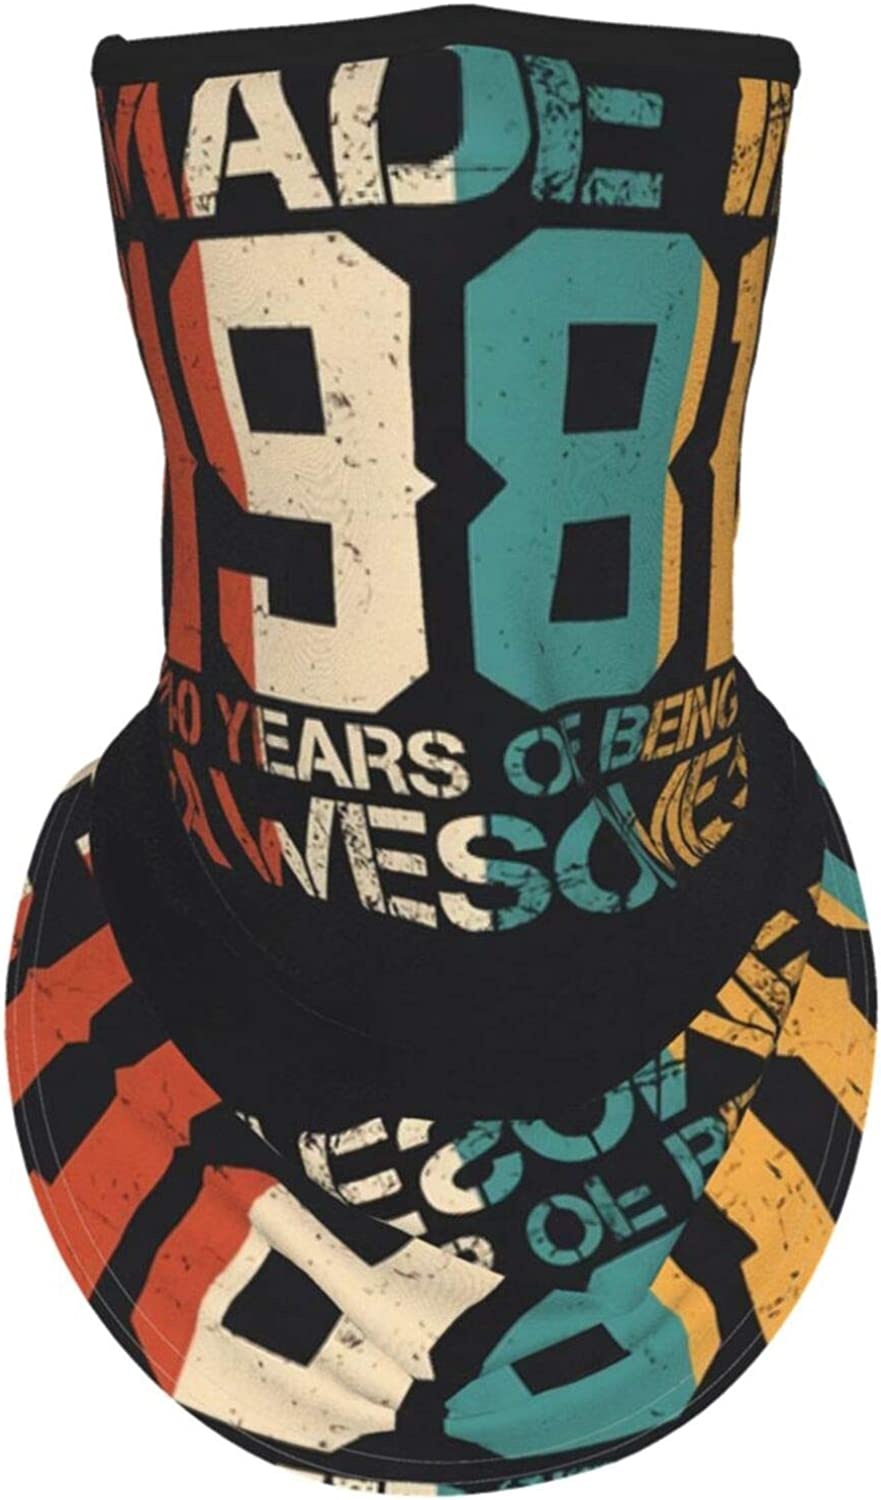 Ear Hangers Face Balaclava Made In 1981 Retro 40 Years Of Being Awesome Birthday Black Protective Cover Wristband Bandanas Neck Gaiter Dust-Proof,Anti-Pungent Gas,Washable